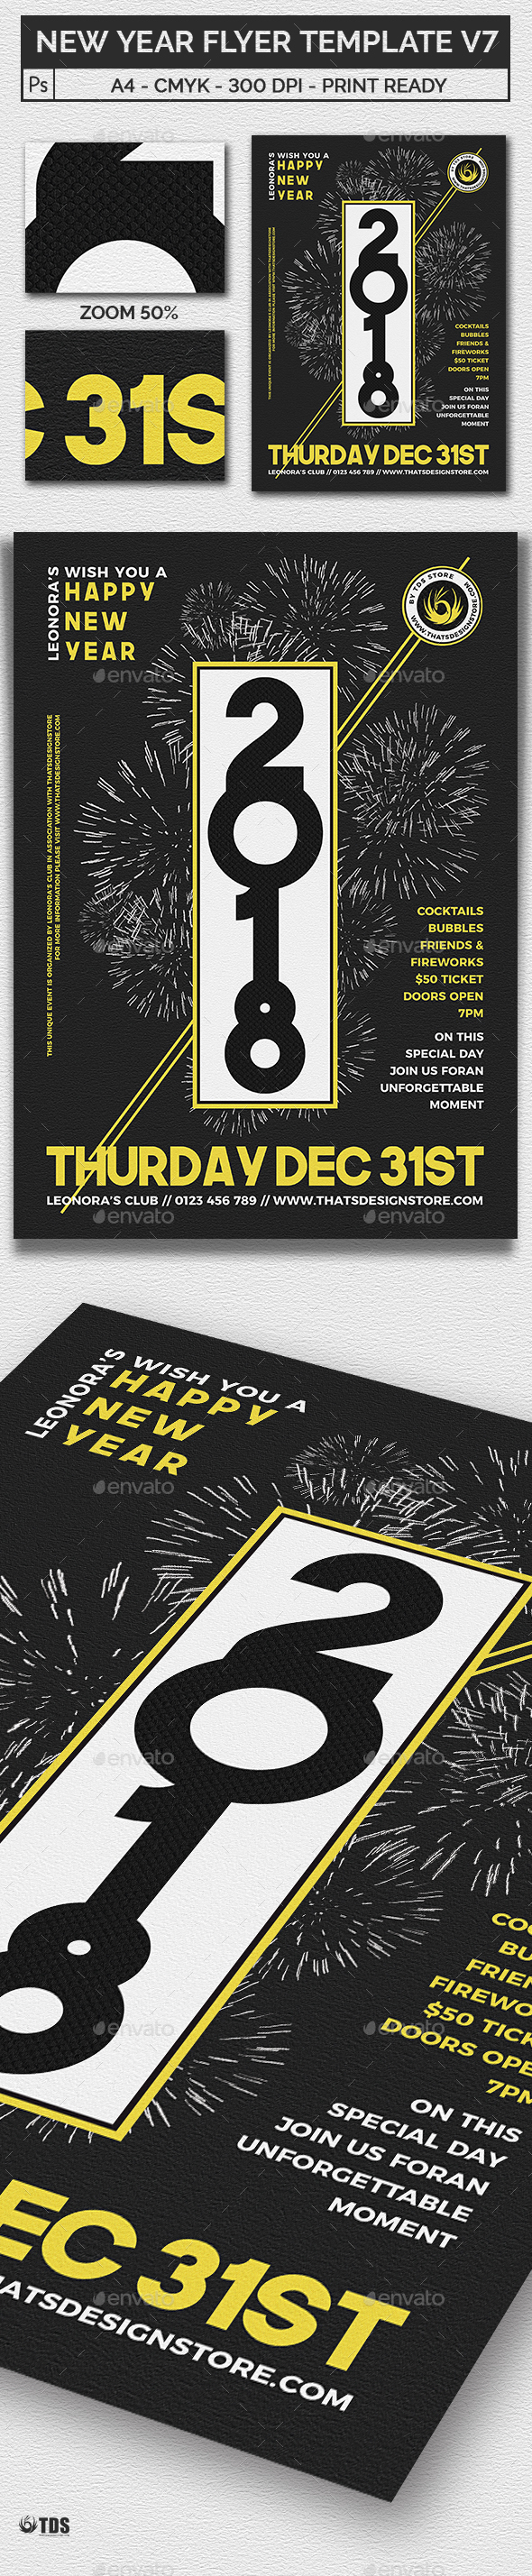 New Year Flyer Template V7 - Clubs & Parties Events